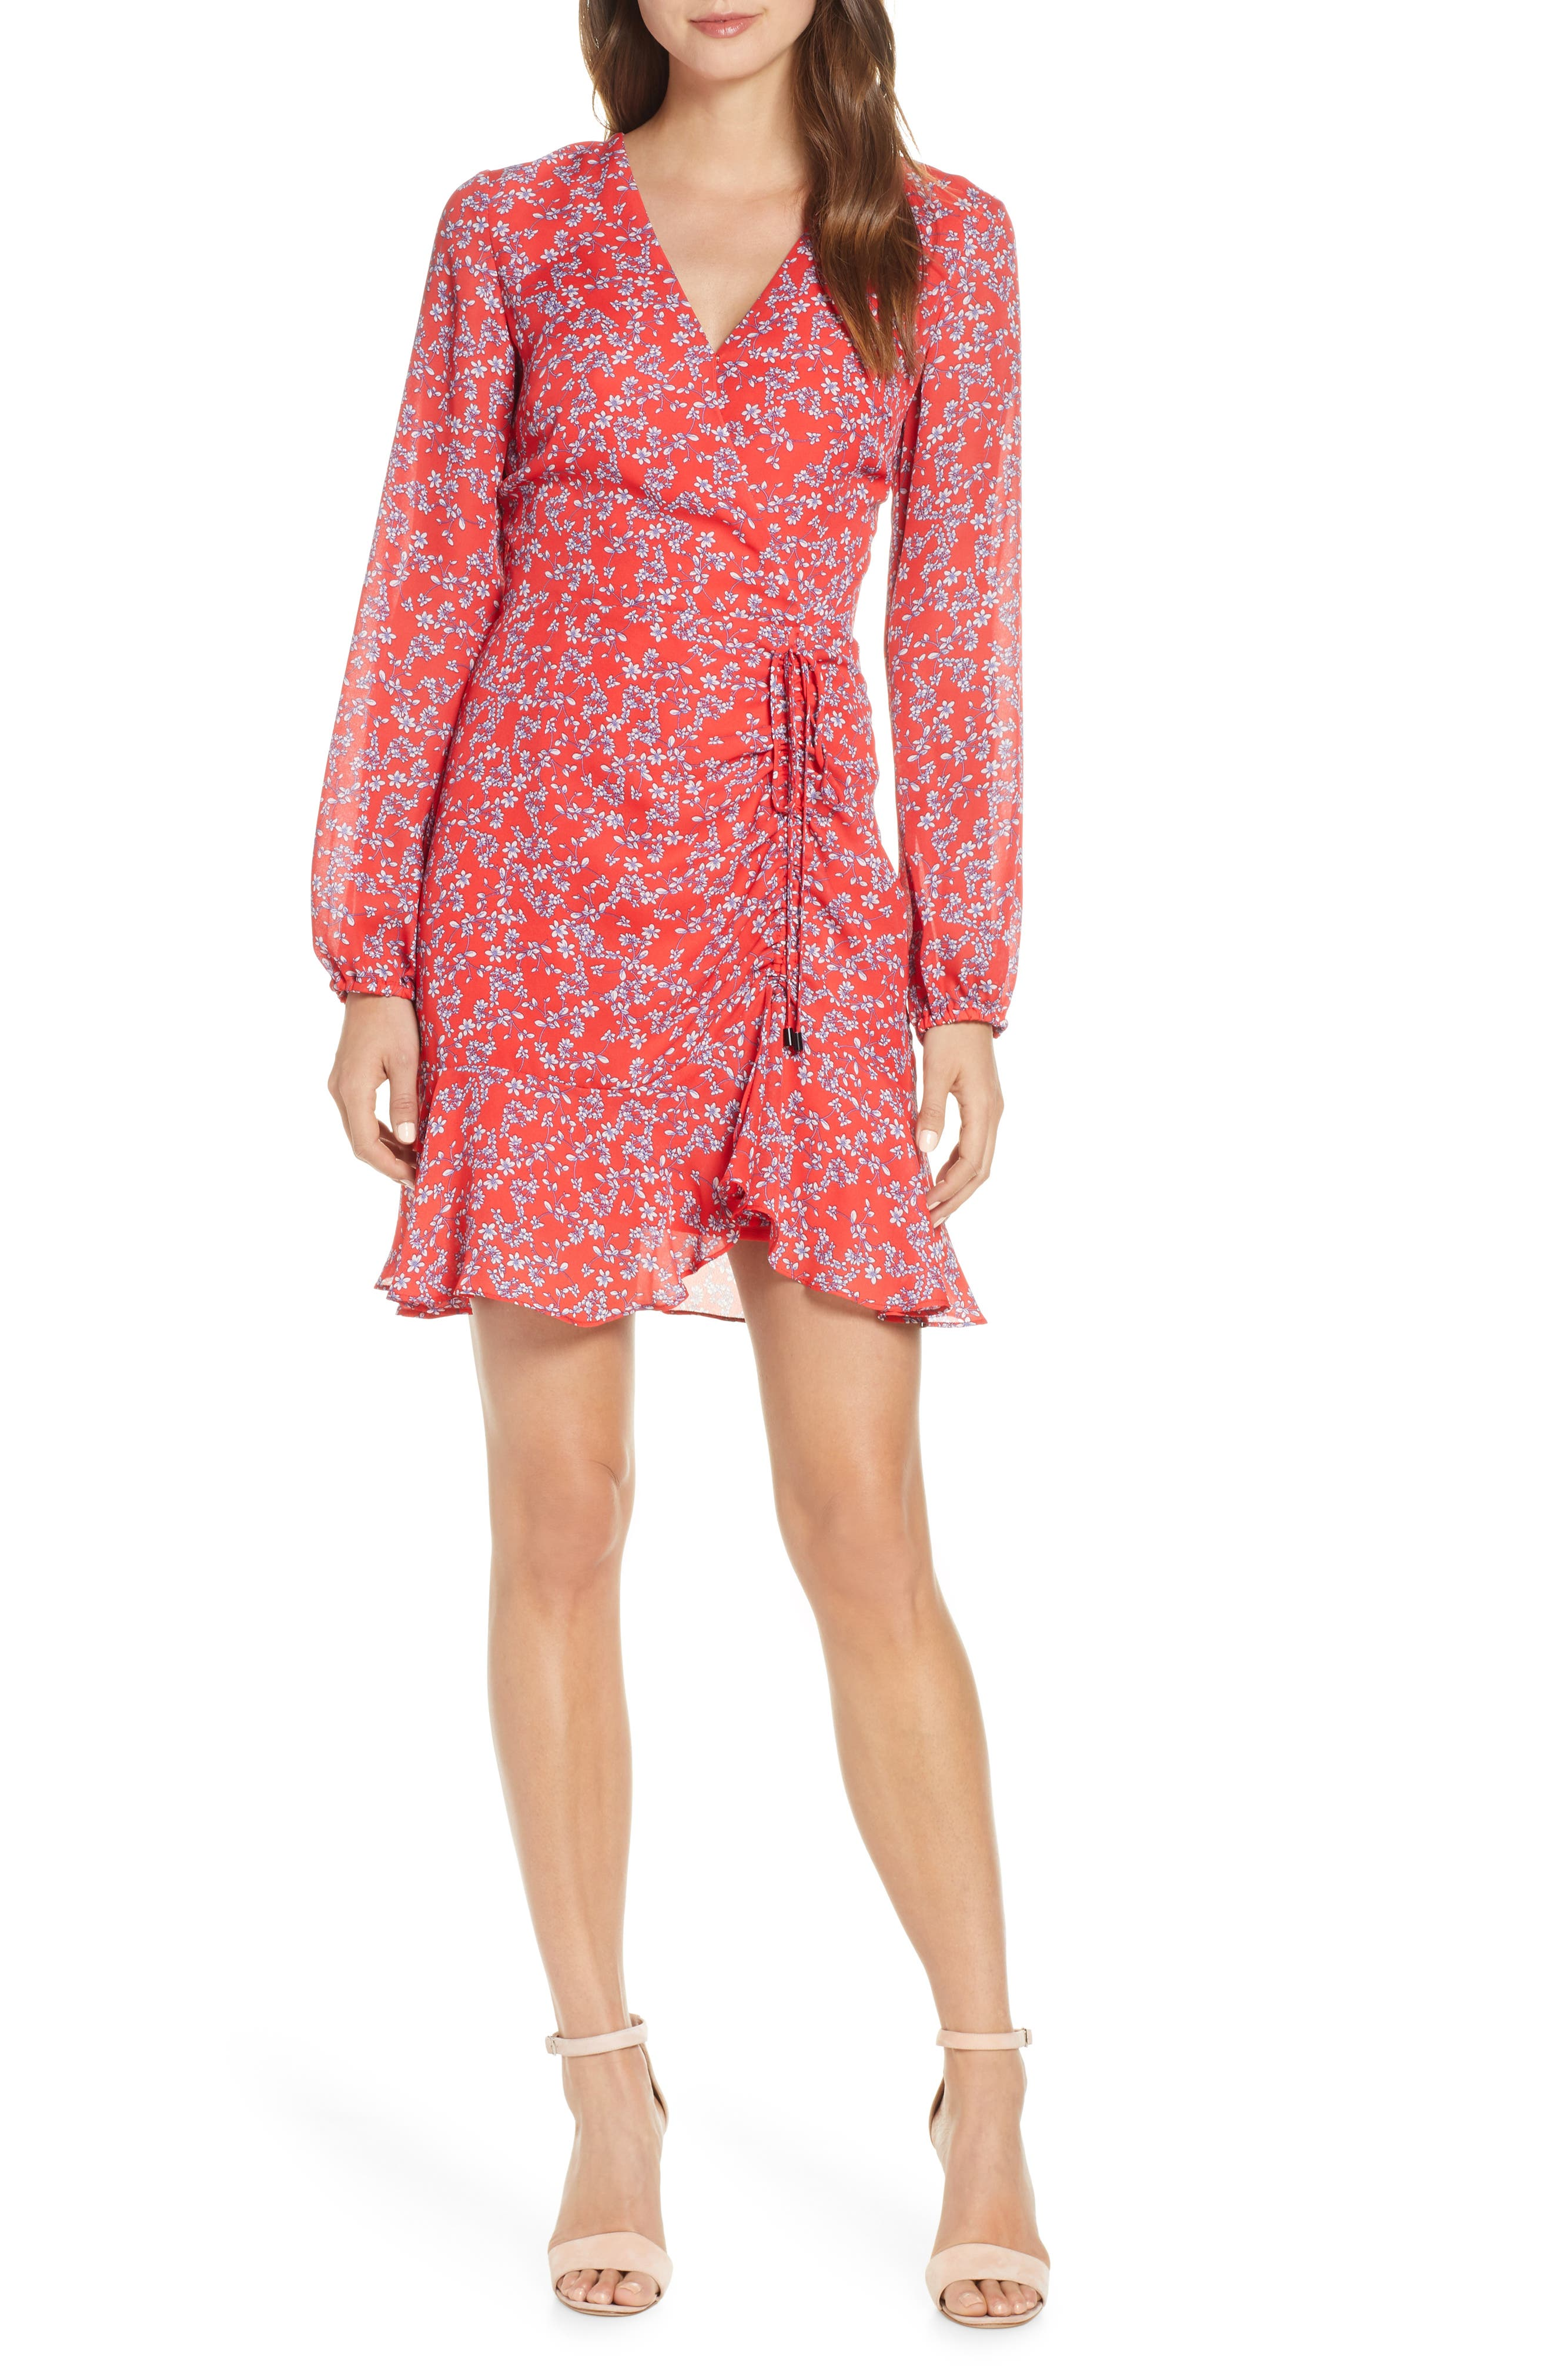 Adelyn Rae April Print Long Sleeve Ruched Dress, Red